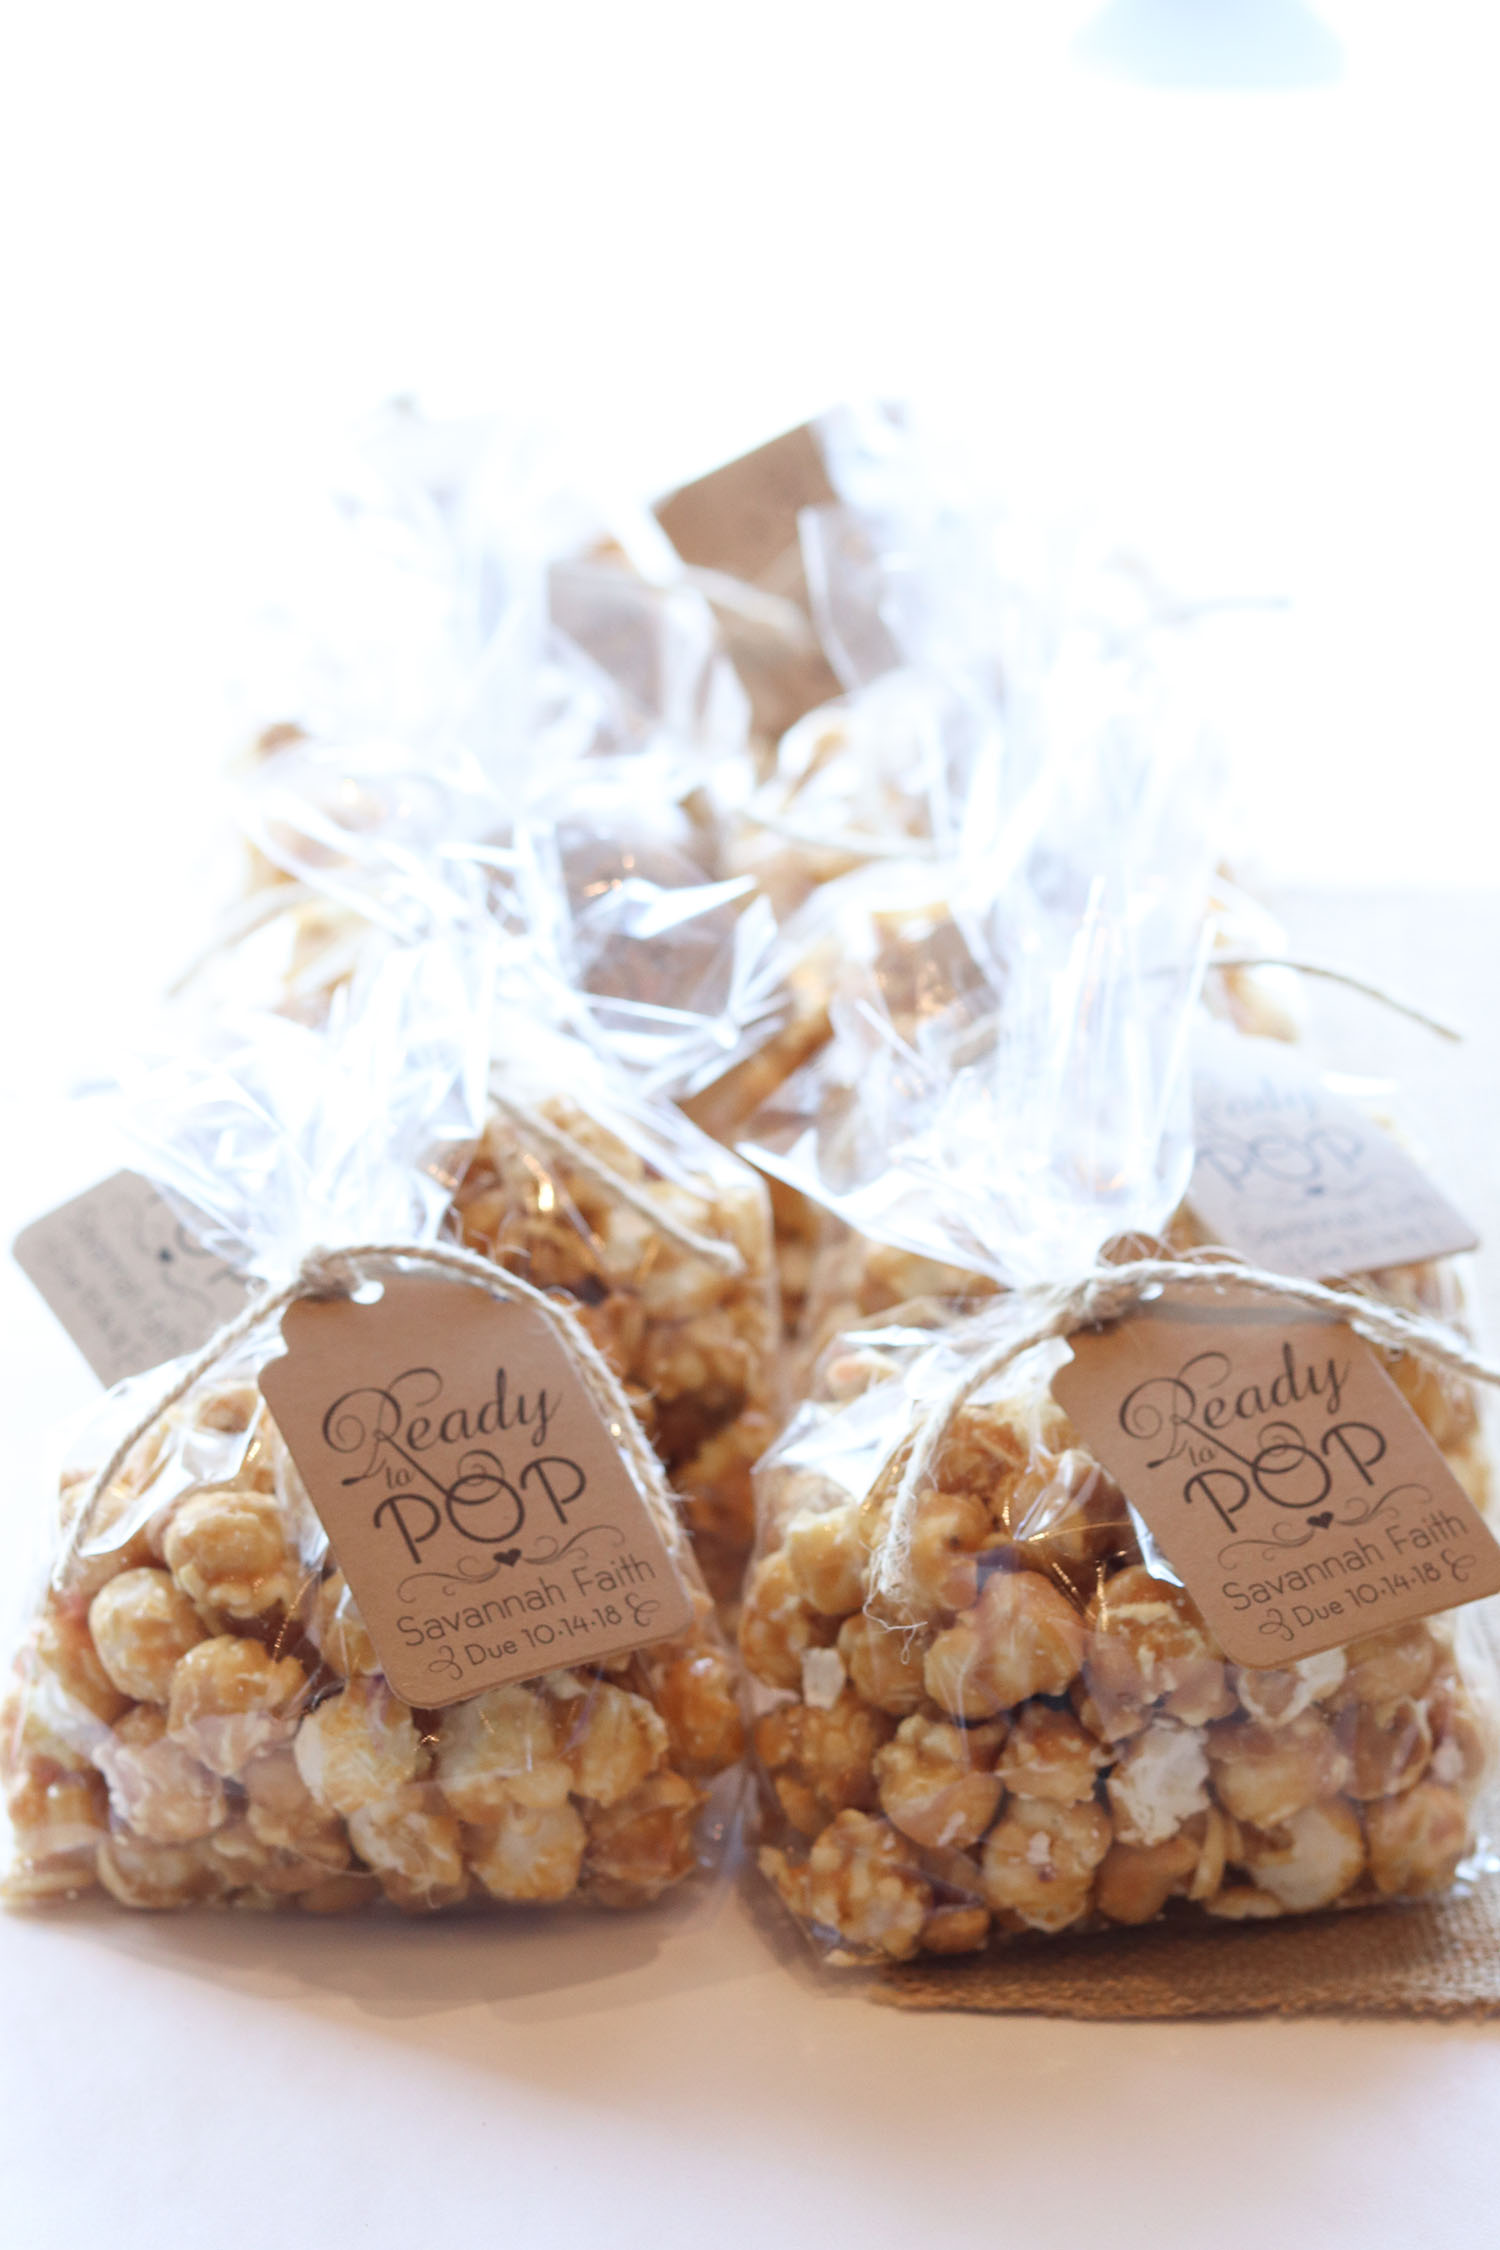 Simple Neutral Baby Shower Party Favors | Edible Party Favors | Edible Baby Shower Party Favors | Ready To Pop Baby Shower Party Favors